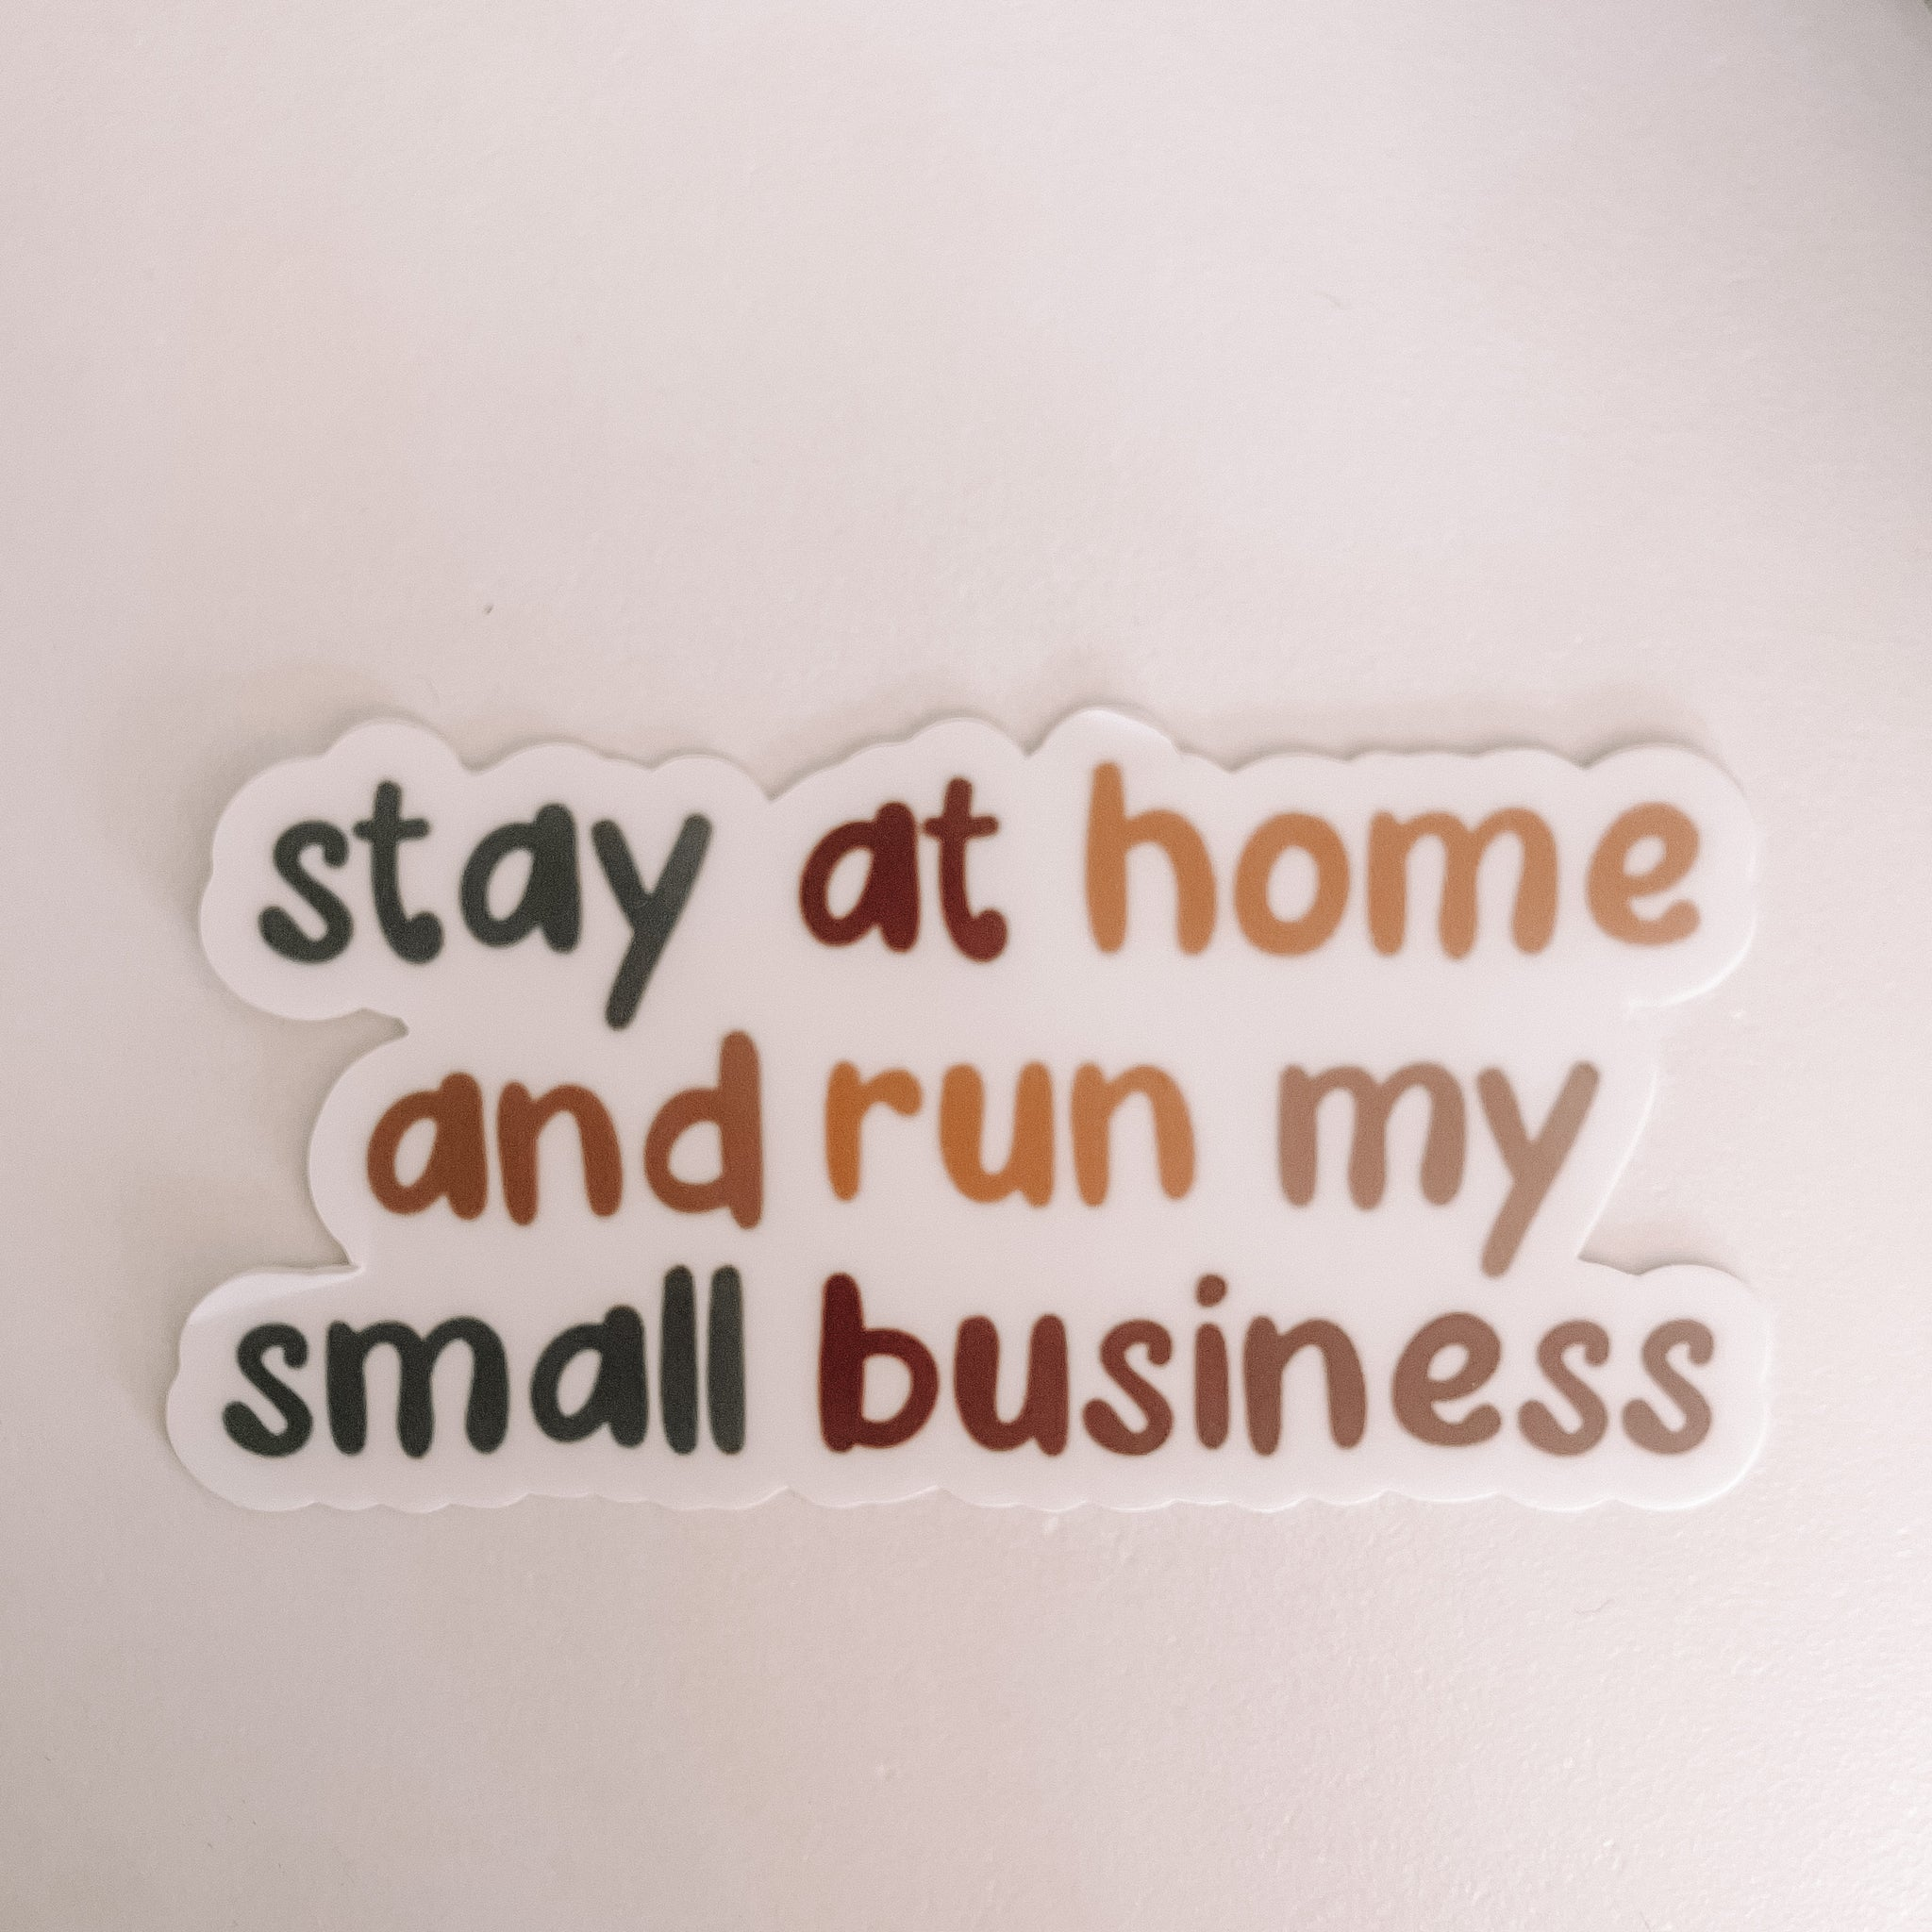 Stay at home and run my small business sticker